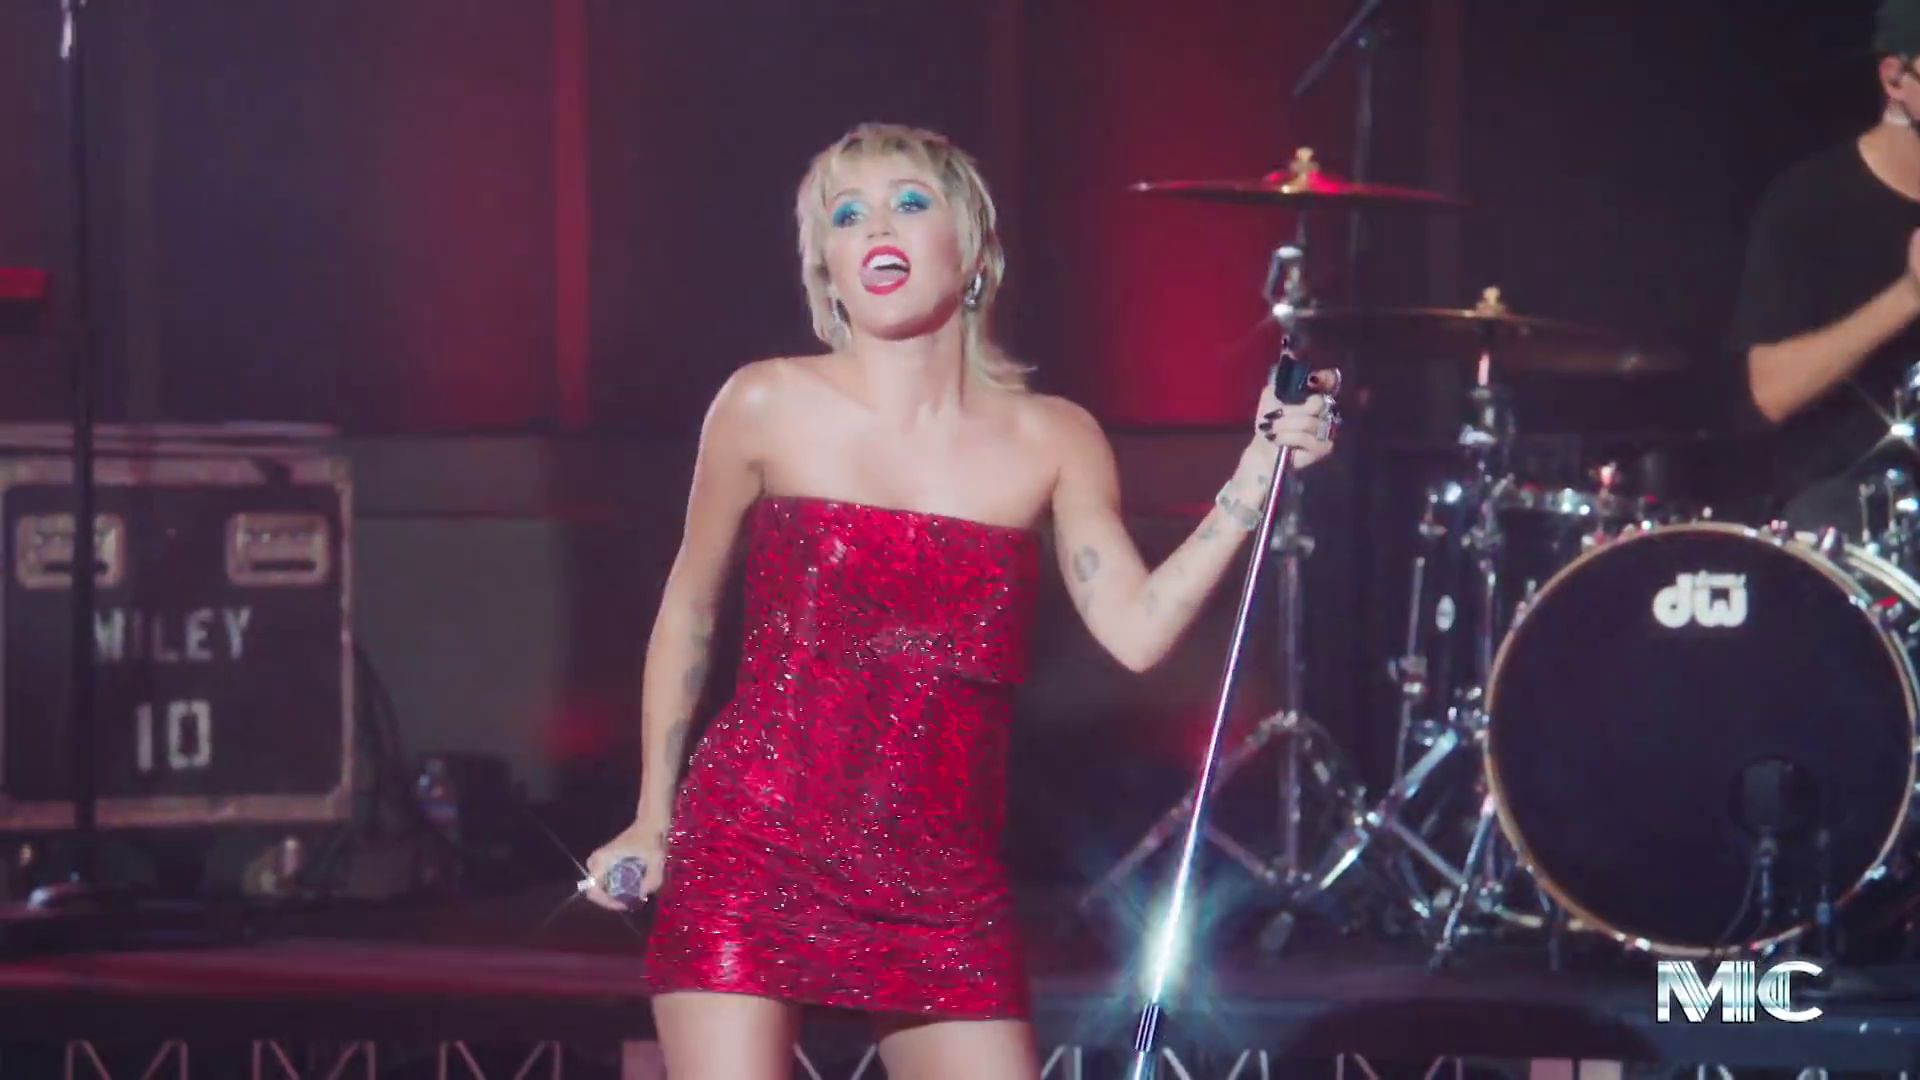 Miley Cyrus Affirms Her '80s Frontwoman Persona with Hall & Oates and Blondie Covers